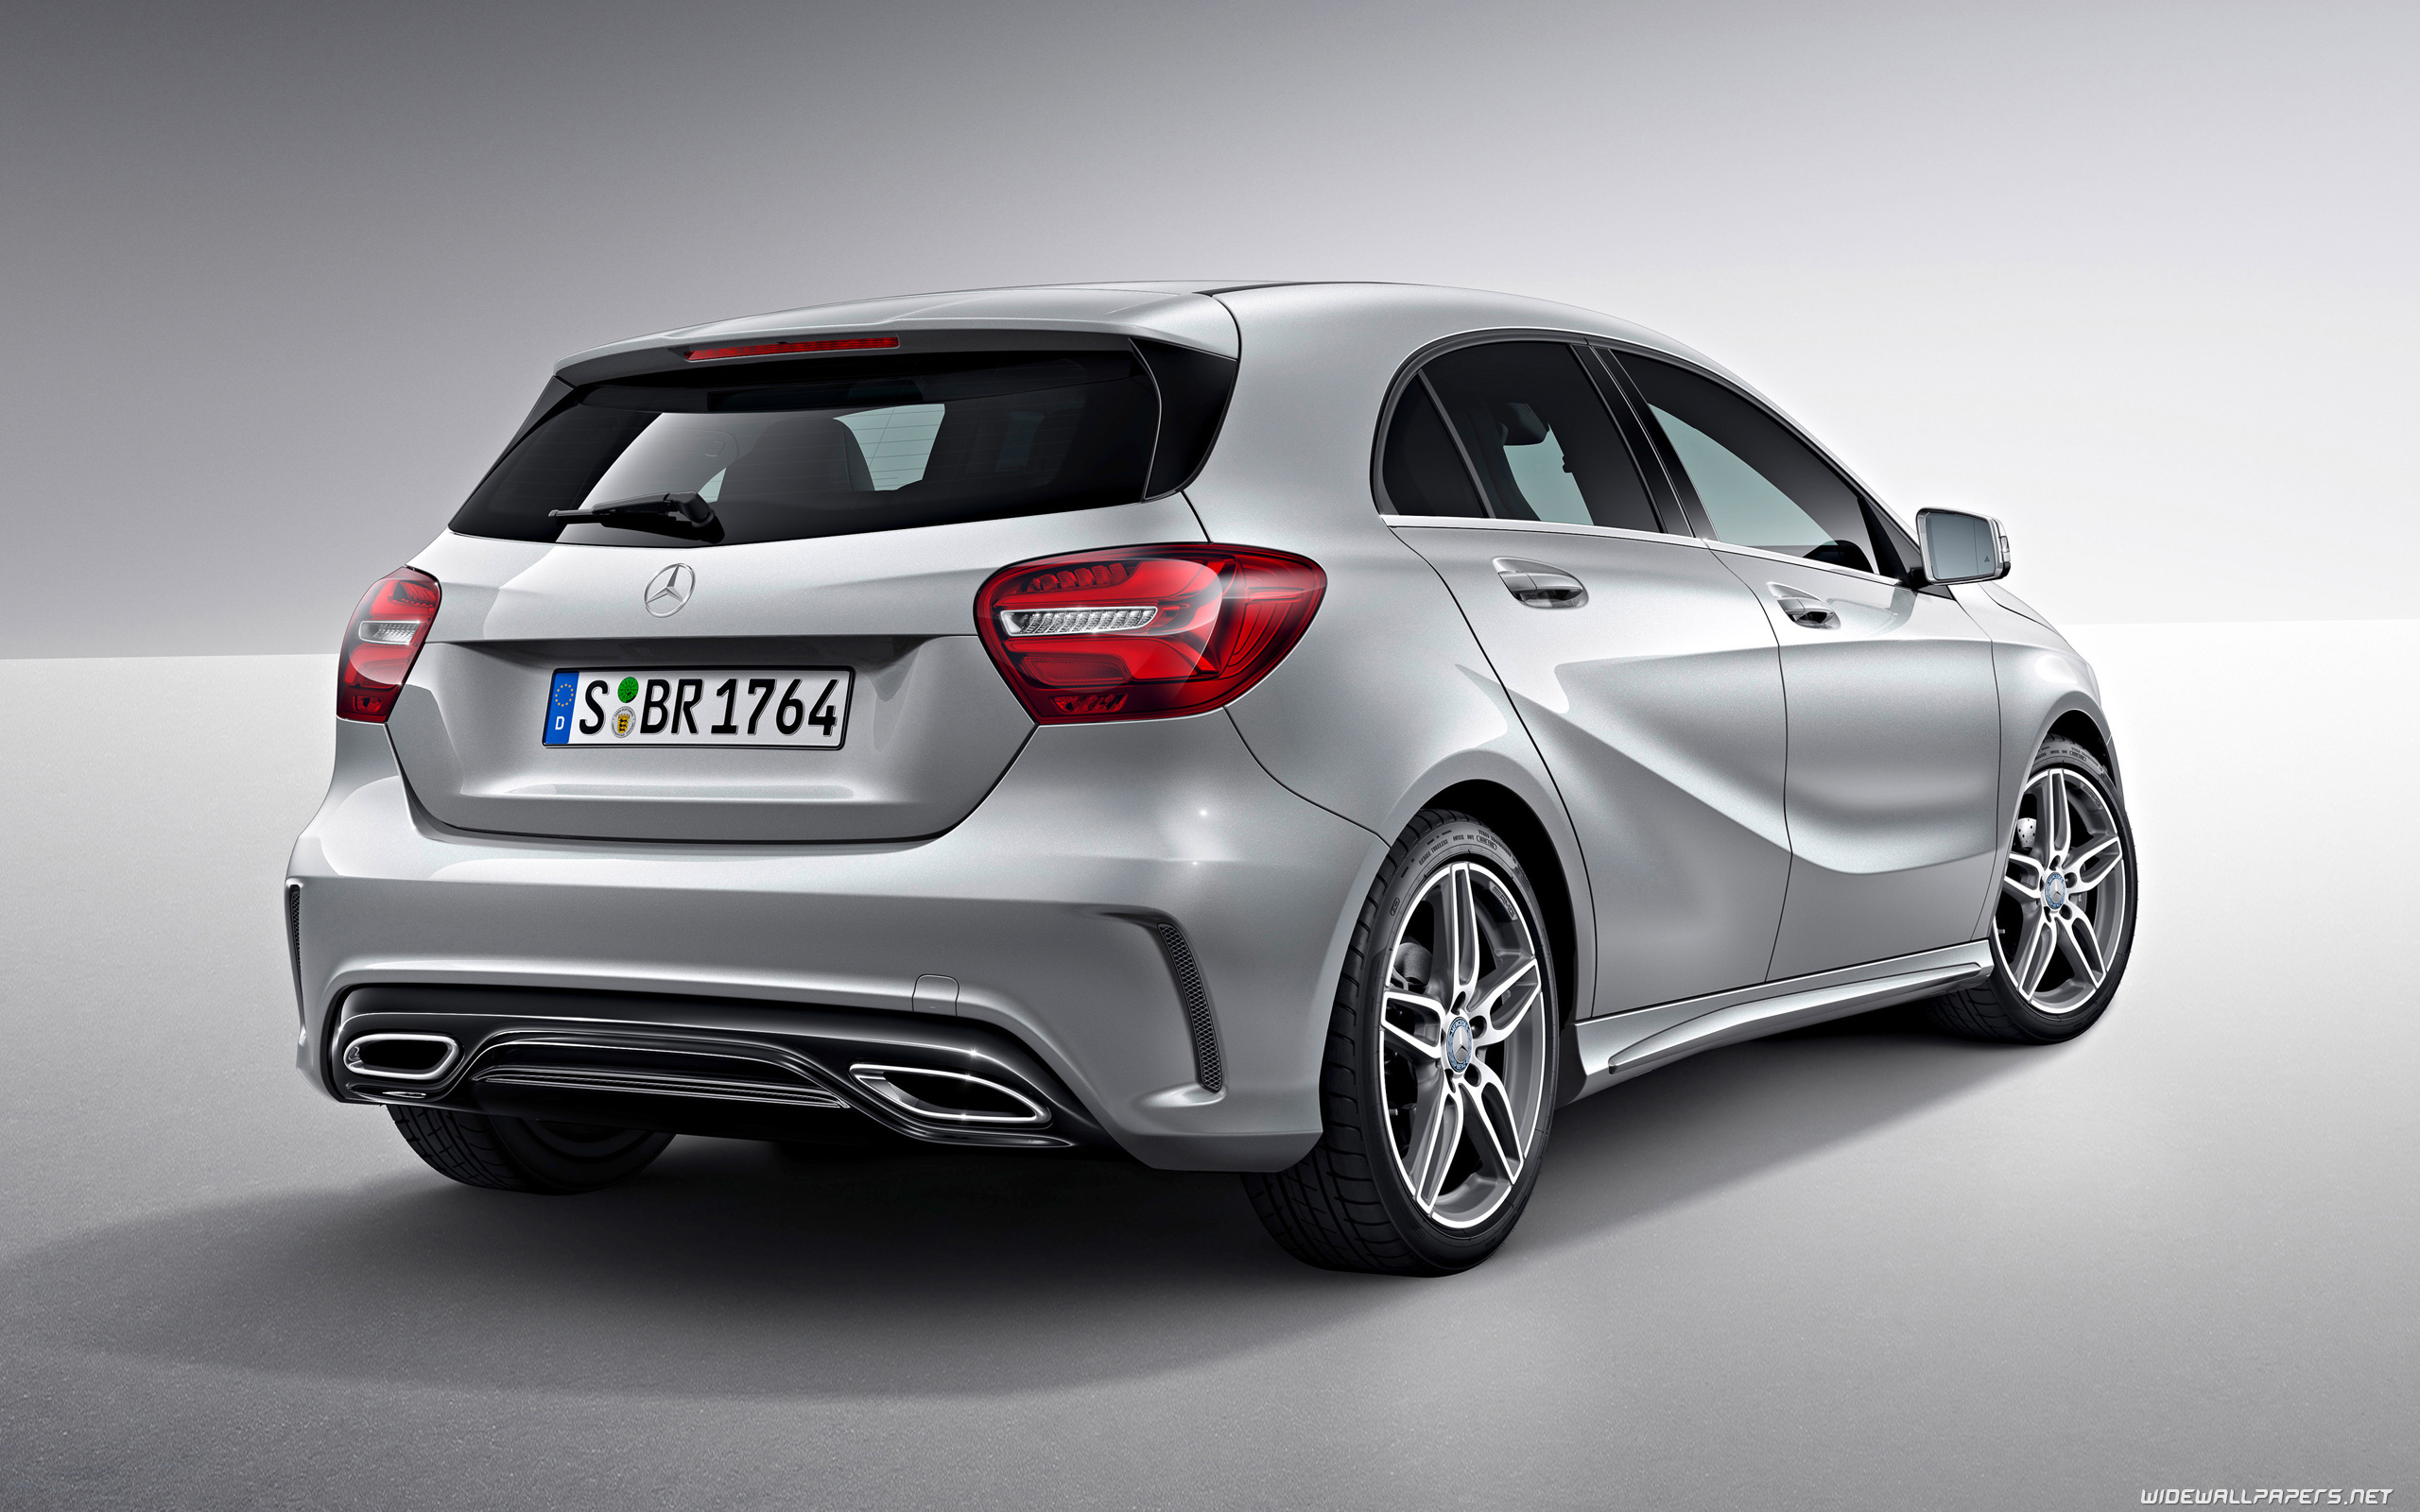 mercedes benz a class cars desktop wallpapers 4k ultra hd page 4. Black Bedroom Furniture Sets. Home Design Ideas